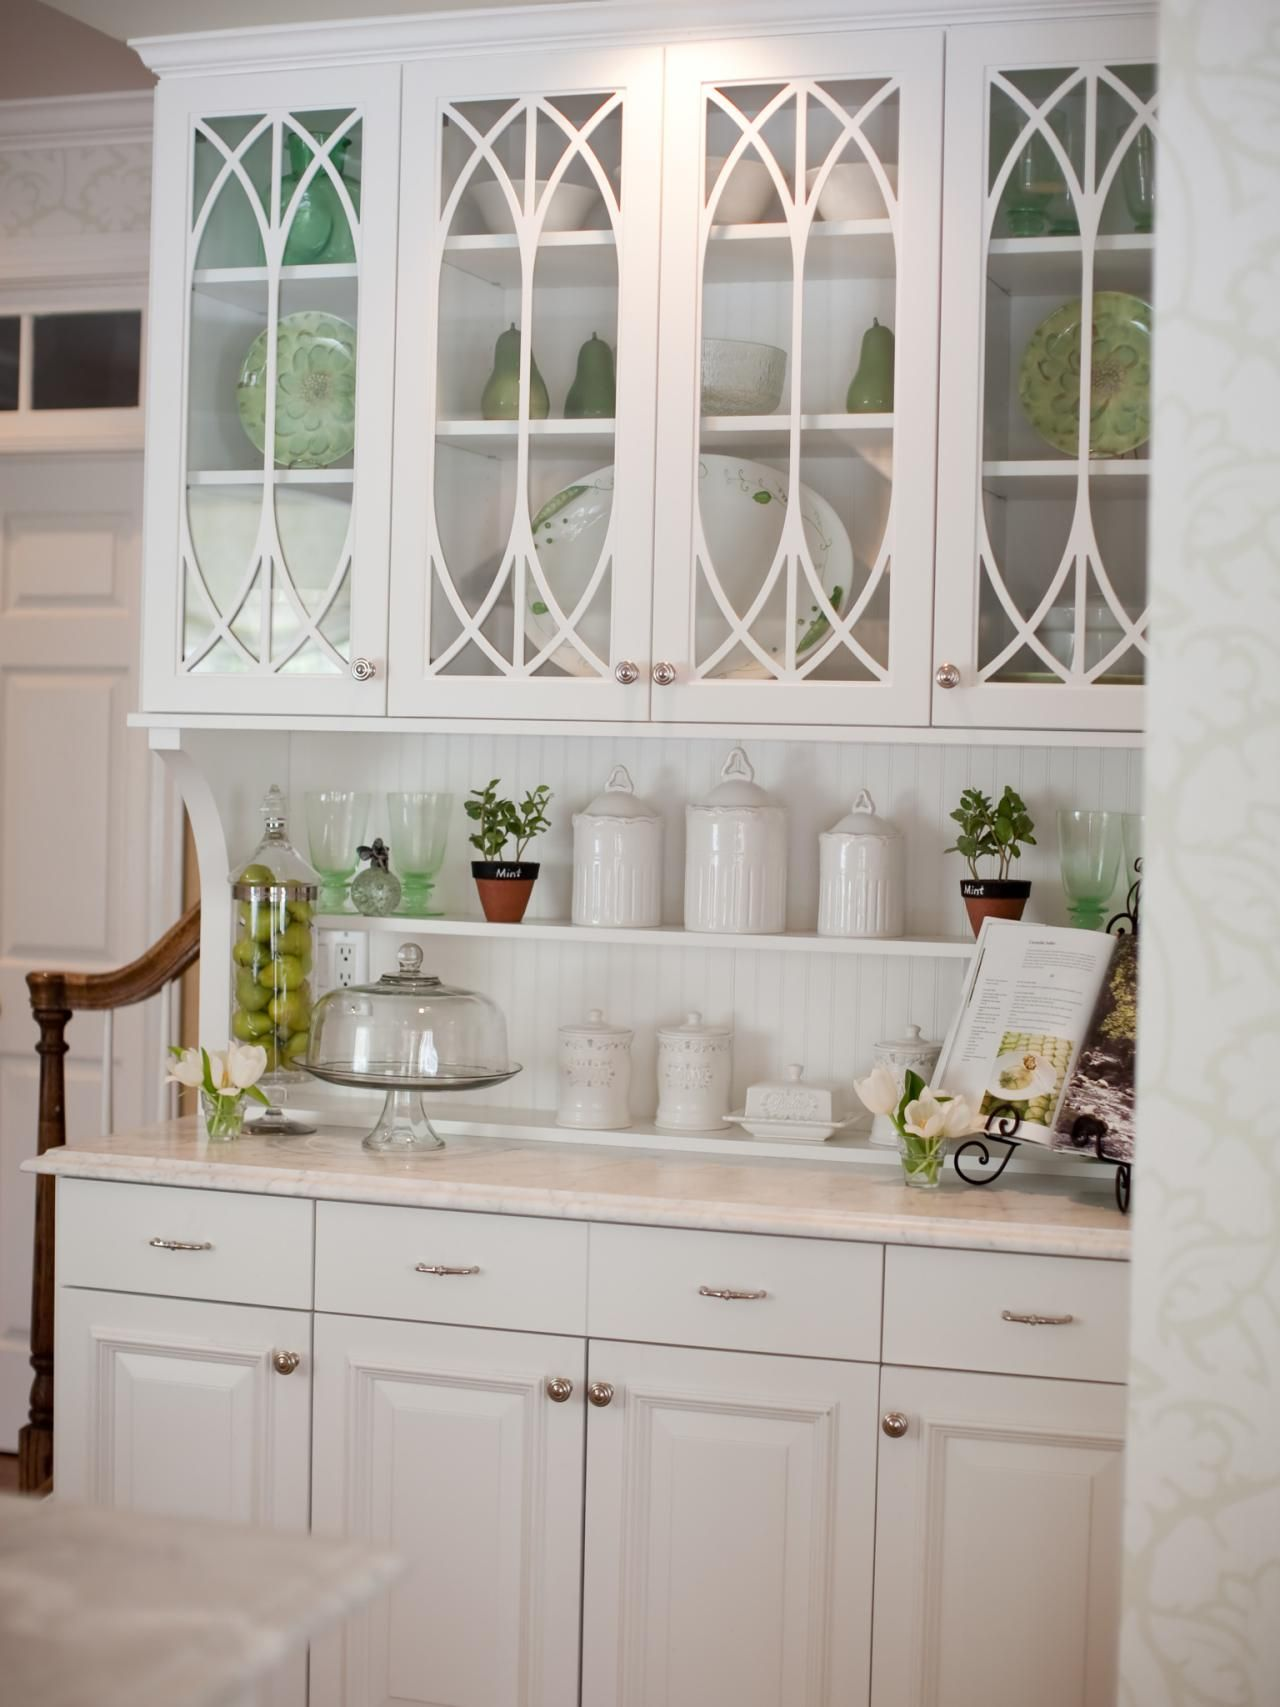 This built in hutch with traditional glass cabinet doors